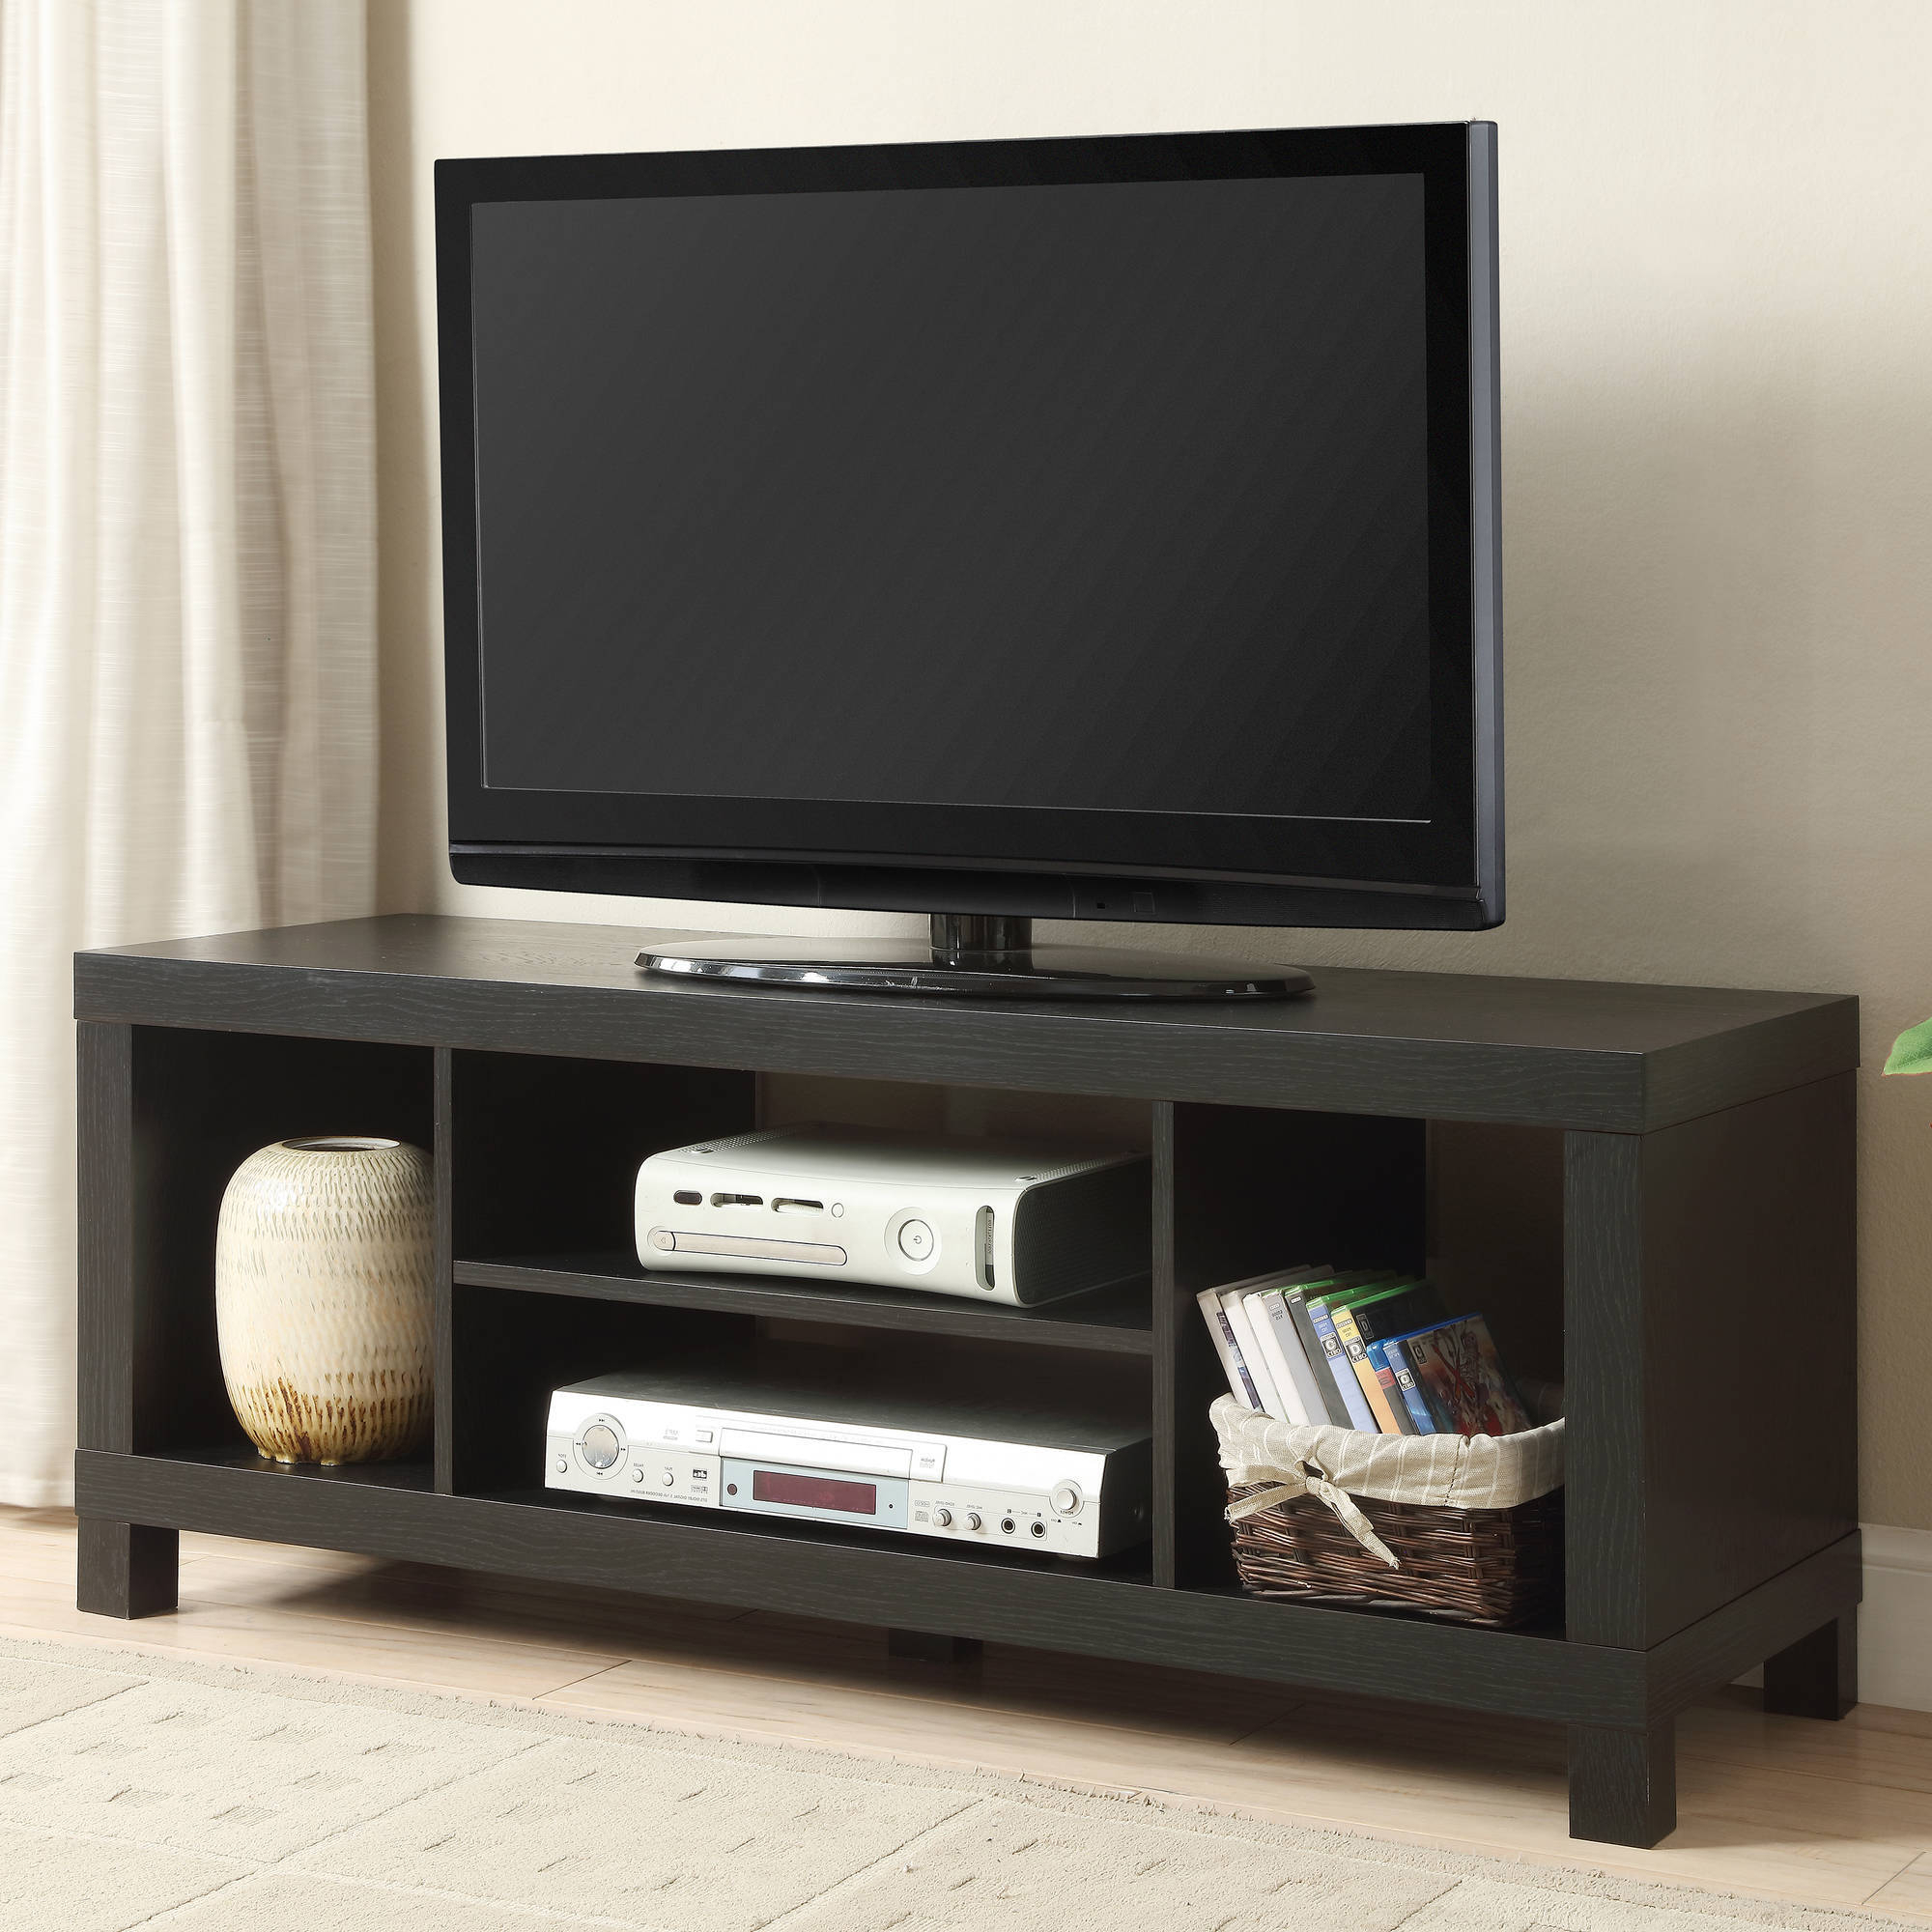 Latest Tv Stands For Tube Tvs Regarding Tv Stands Sam's Club 55 Inch Stand Walmart Whalen Costco For Flat (View 11 of 20)